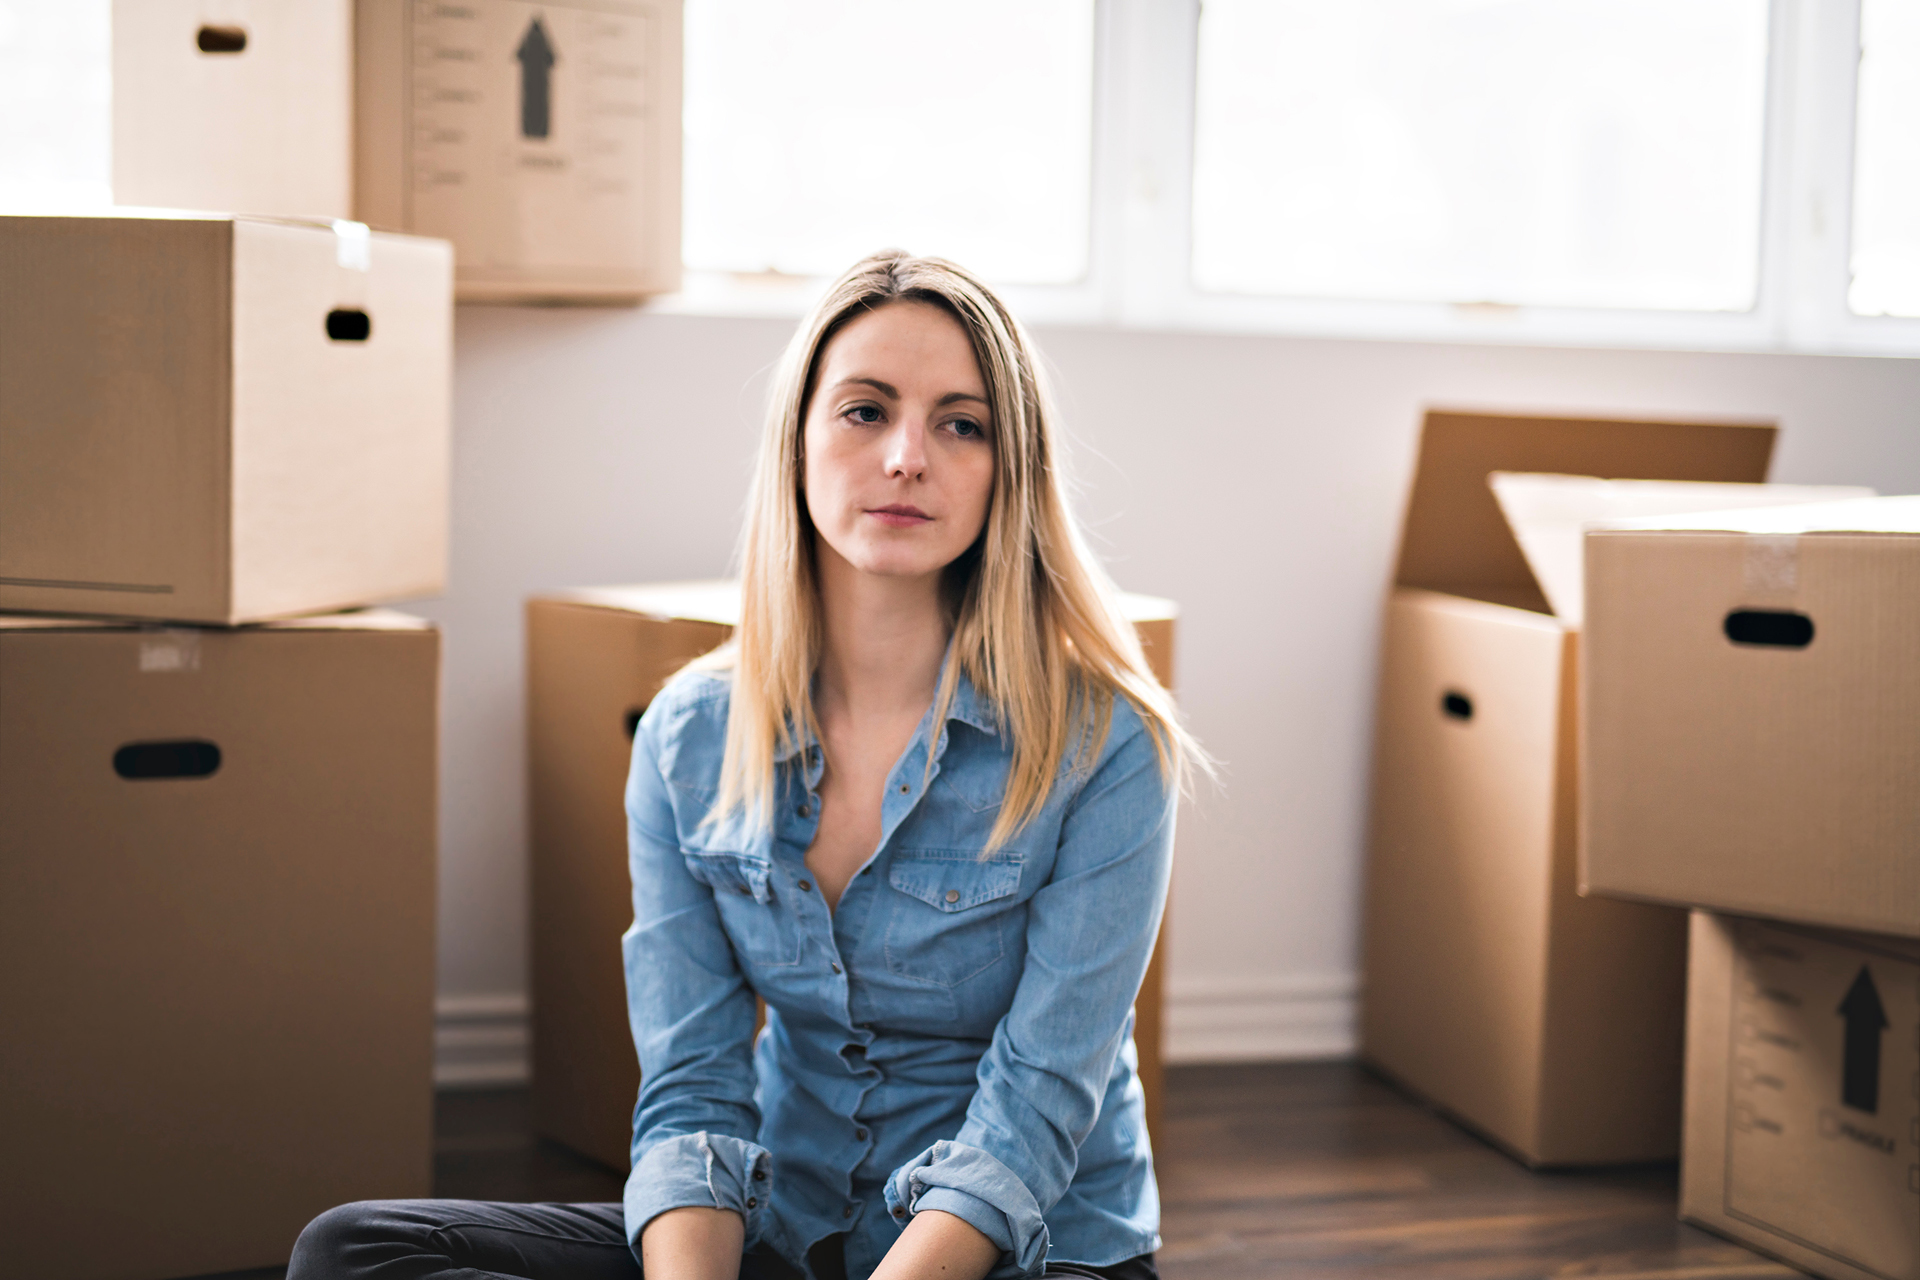 Woman in a room surrounded by boxes